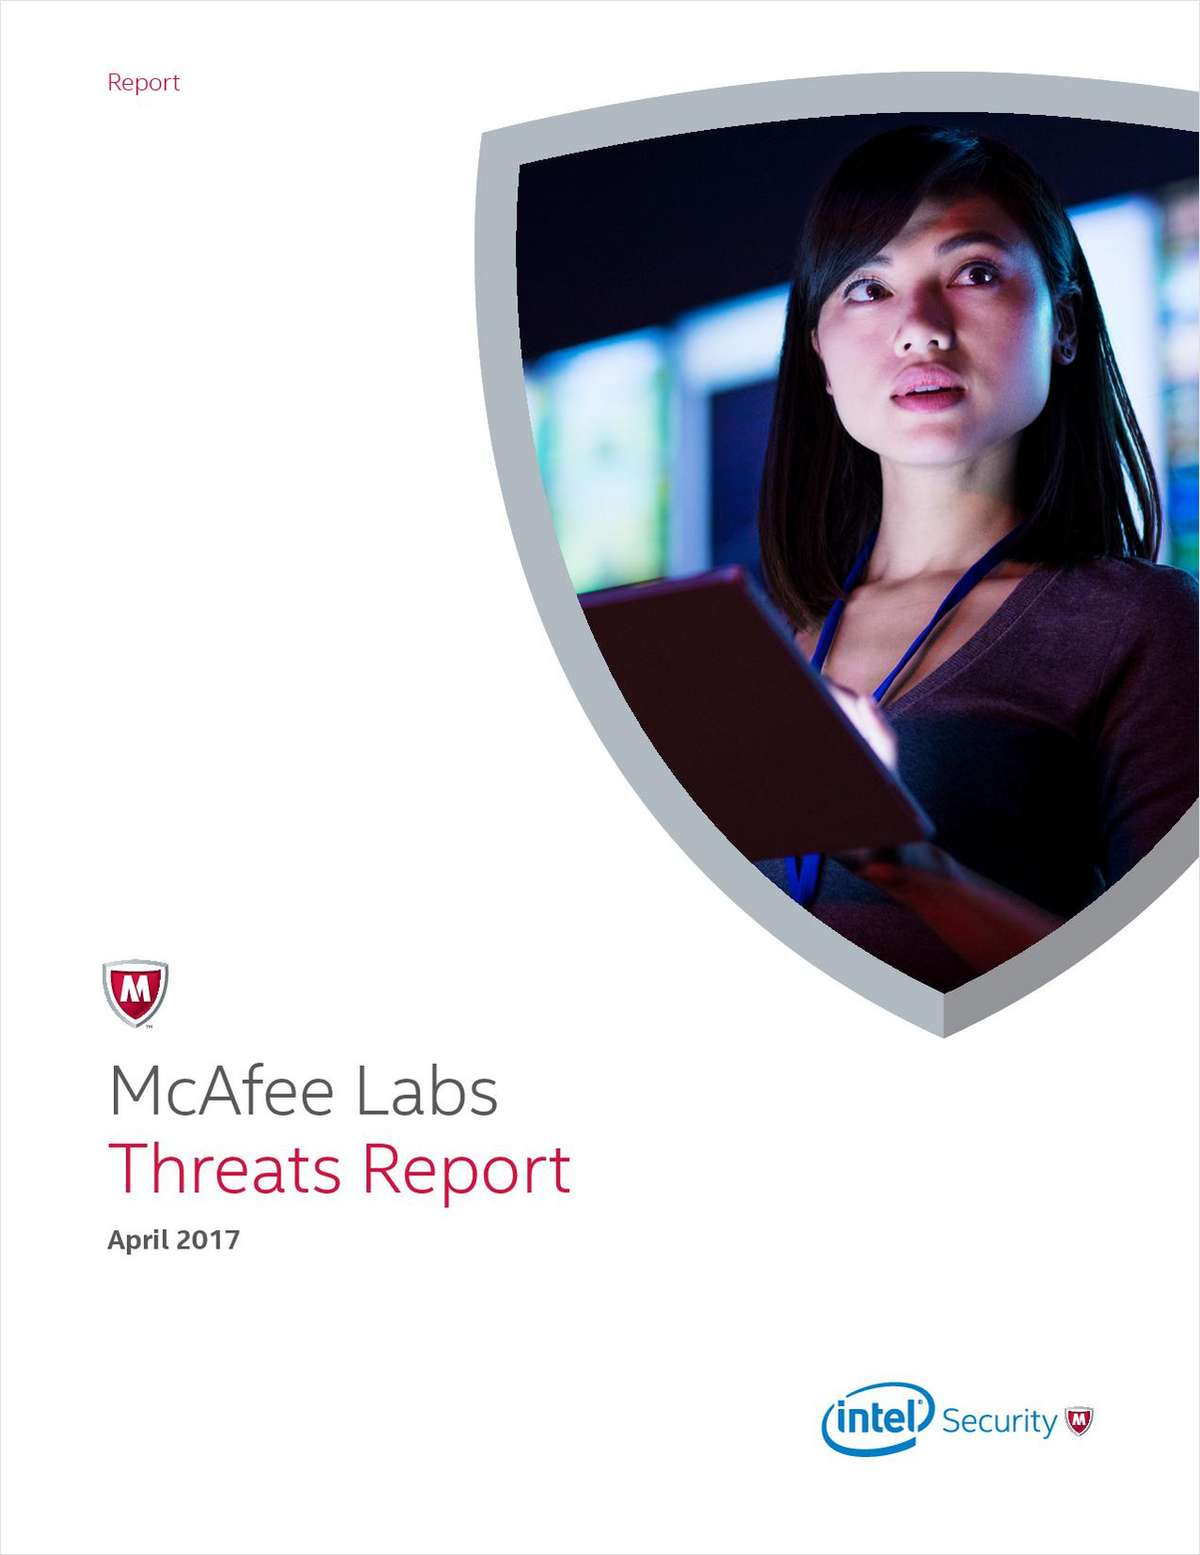 McAfee Labs Threat Report: April 2017